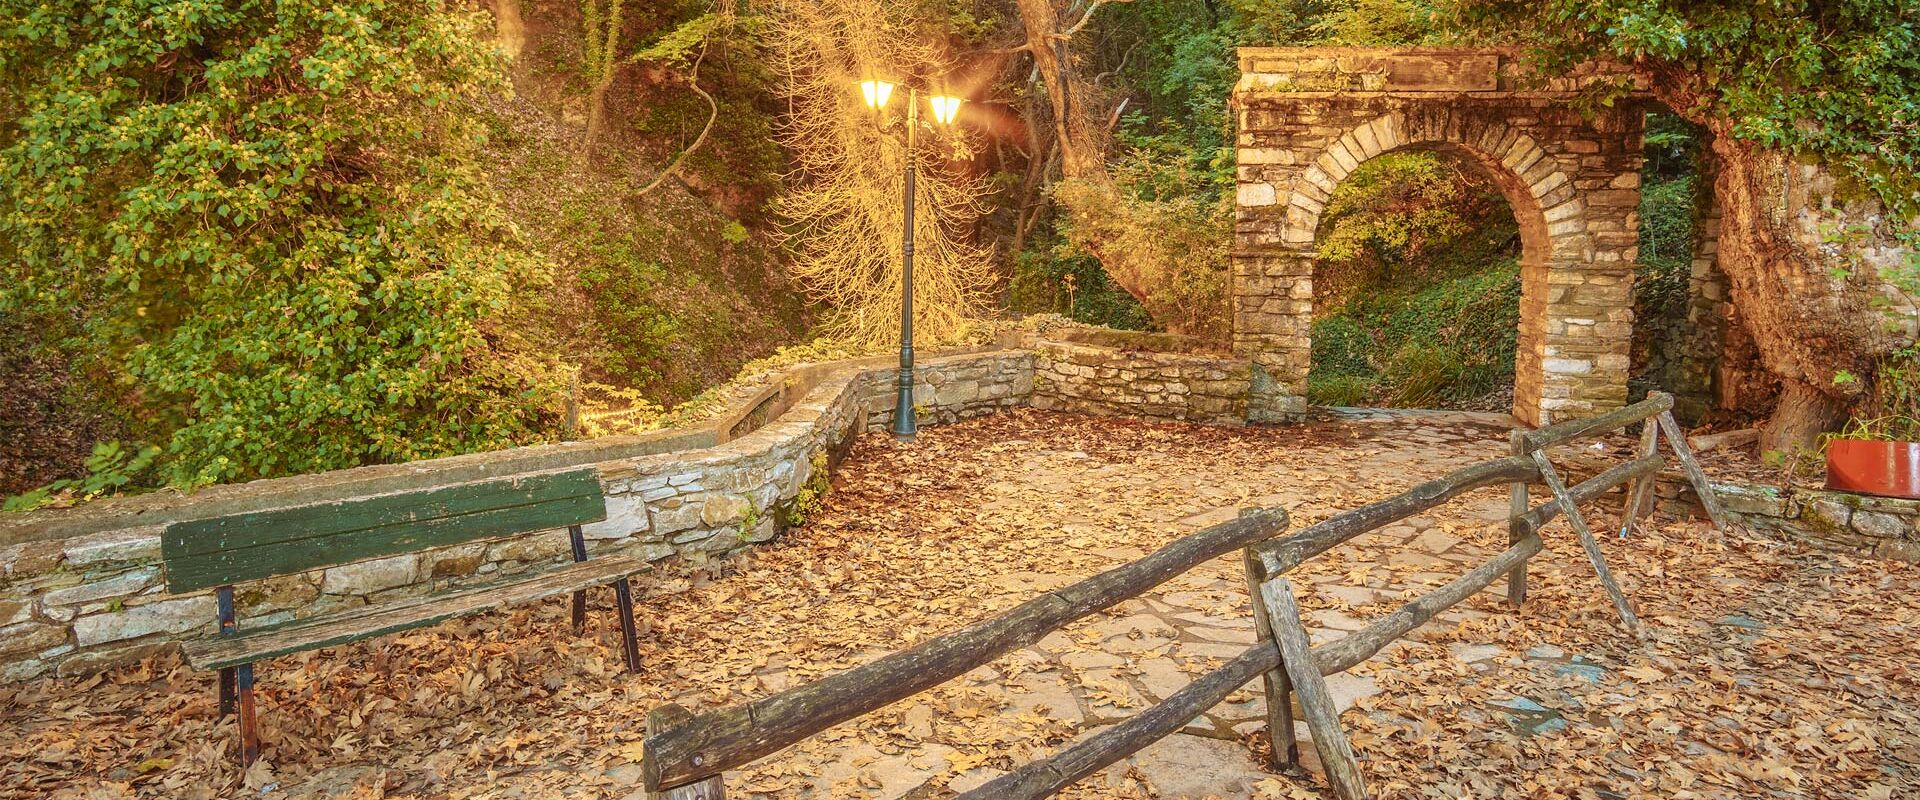 The most popular uphill trail of Pelion mountain is the trail of Centaurs